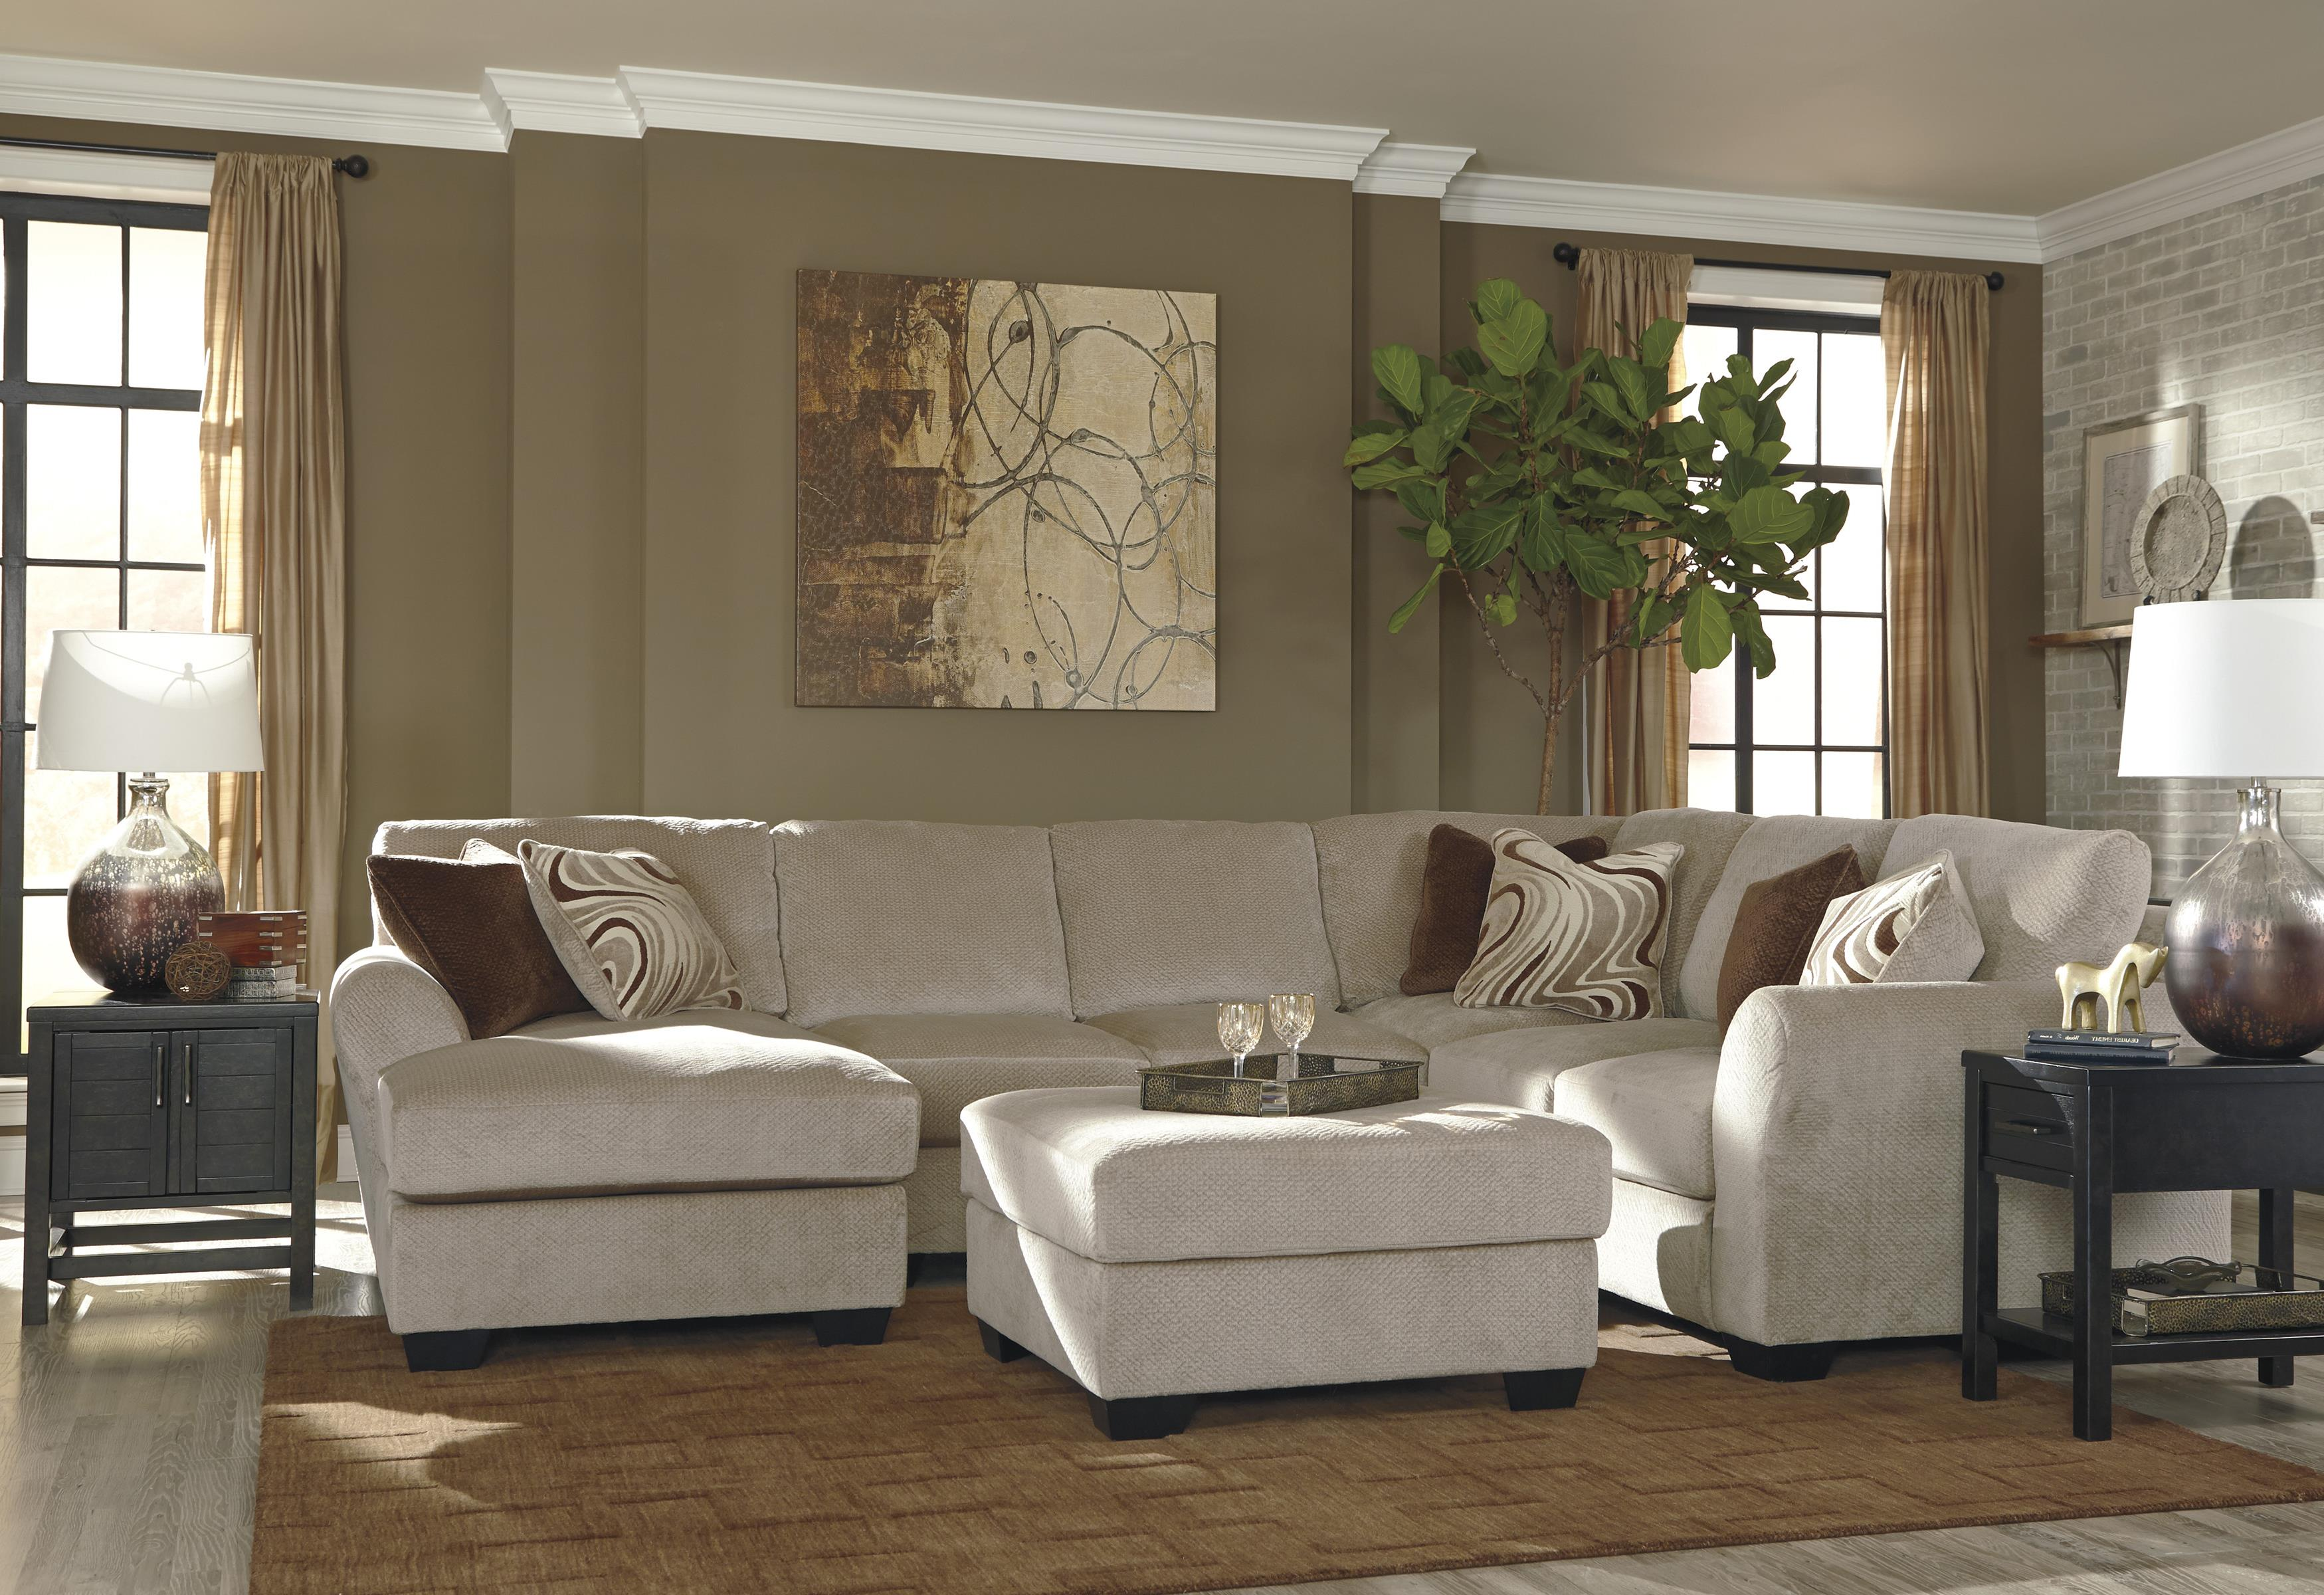 Ashley/Benchcraft Hazes Stationary Living Room Group - Item Number: 65701 Living Room Group 2